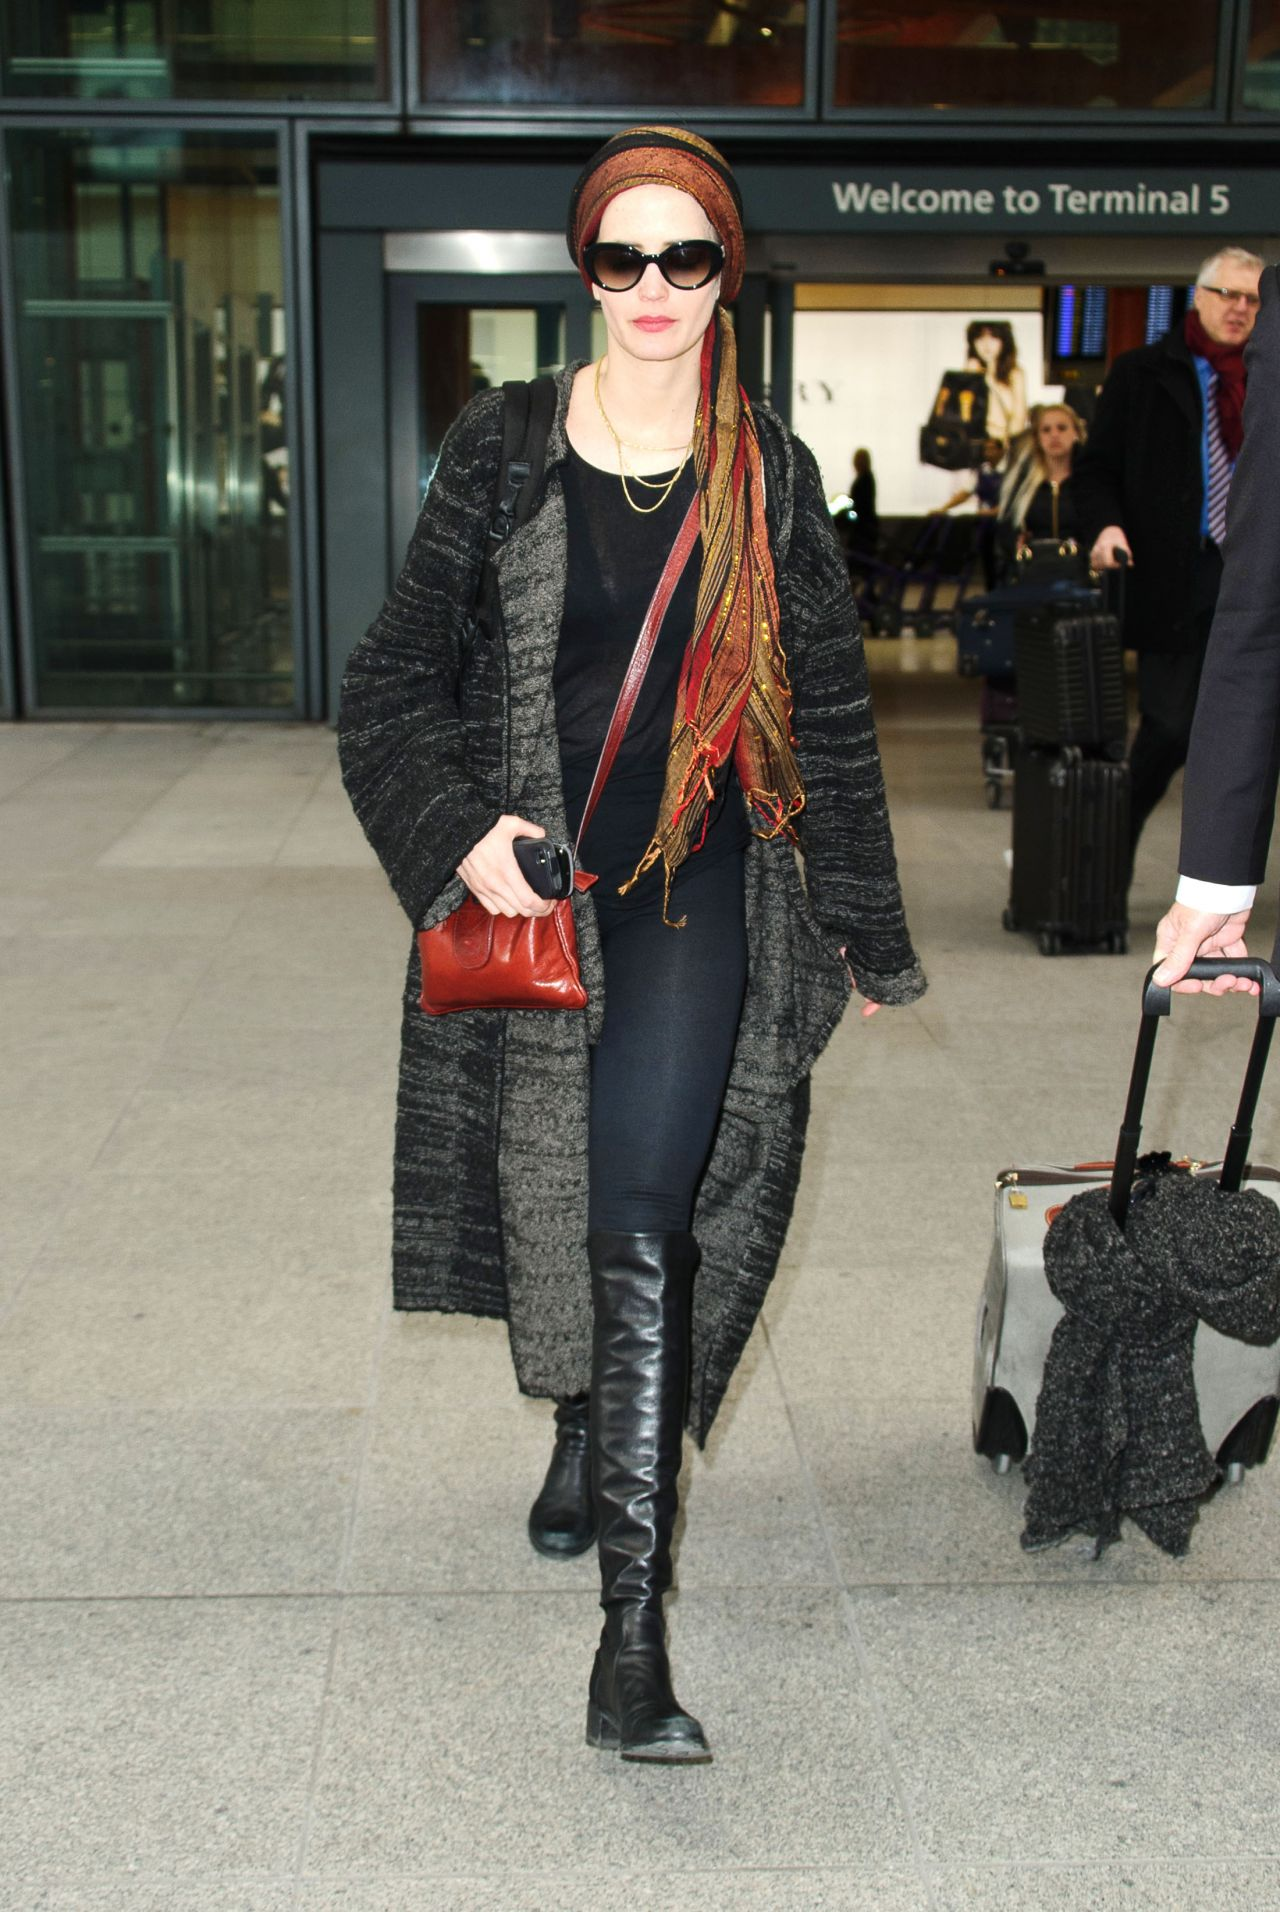 Eva Green Airport Style At Heathrow In London 01 12 2016